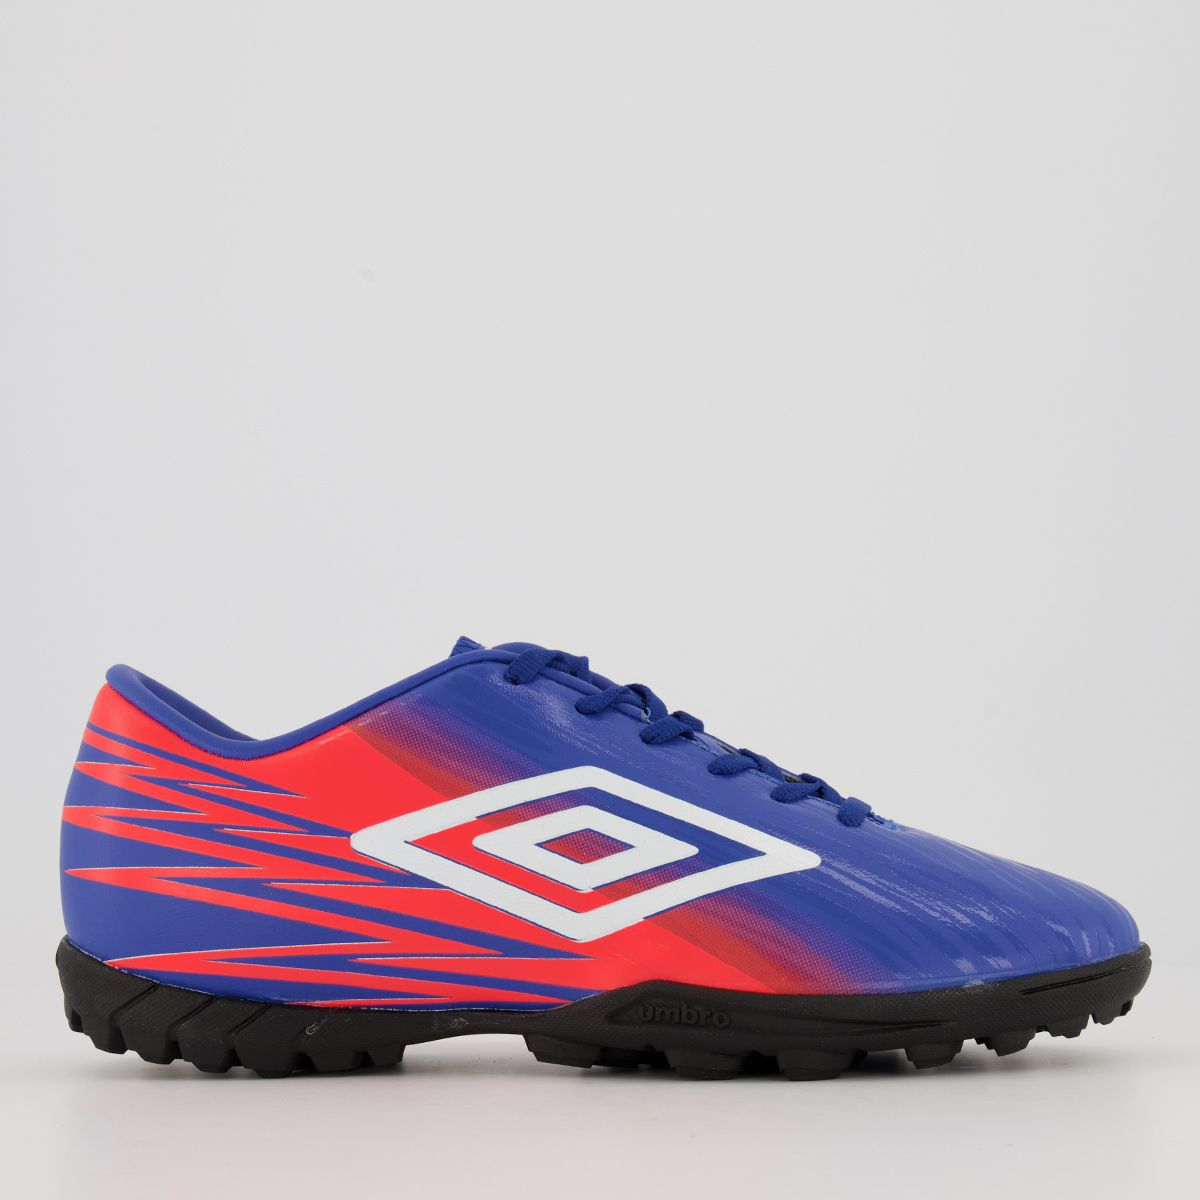 Fut Fanatics Chuteira Umbro Hit Society Azul